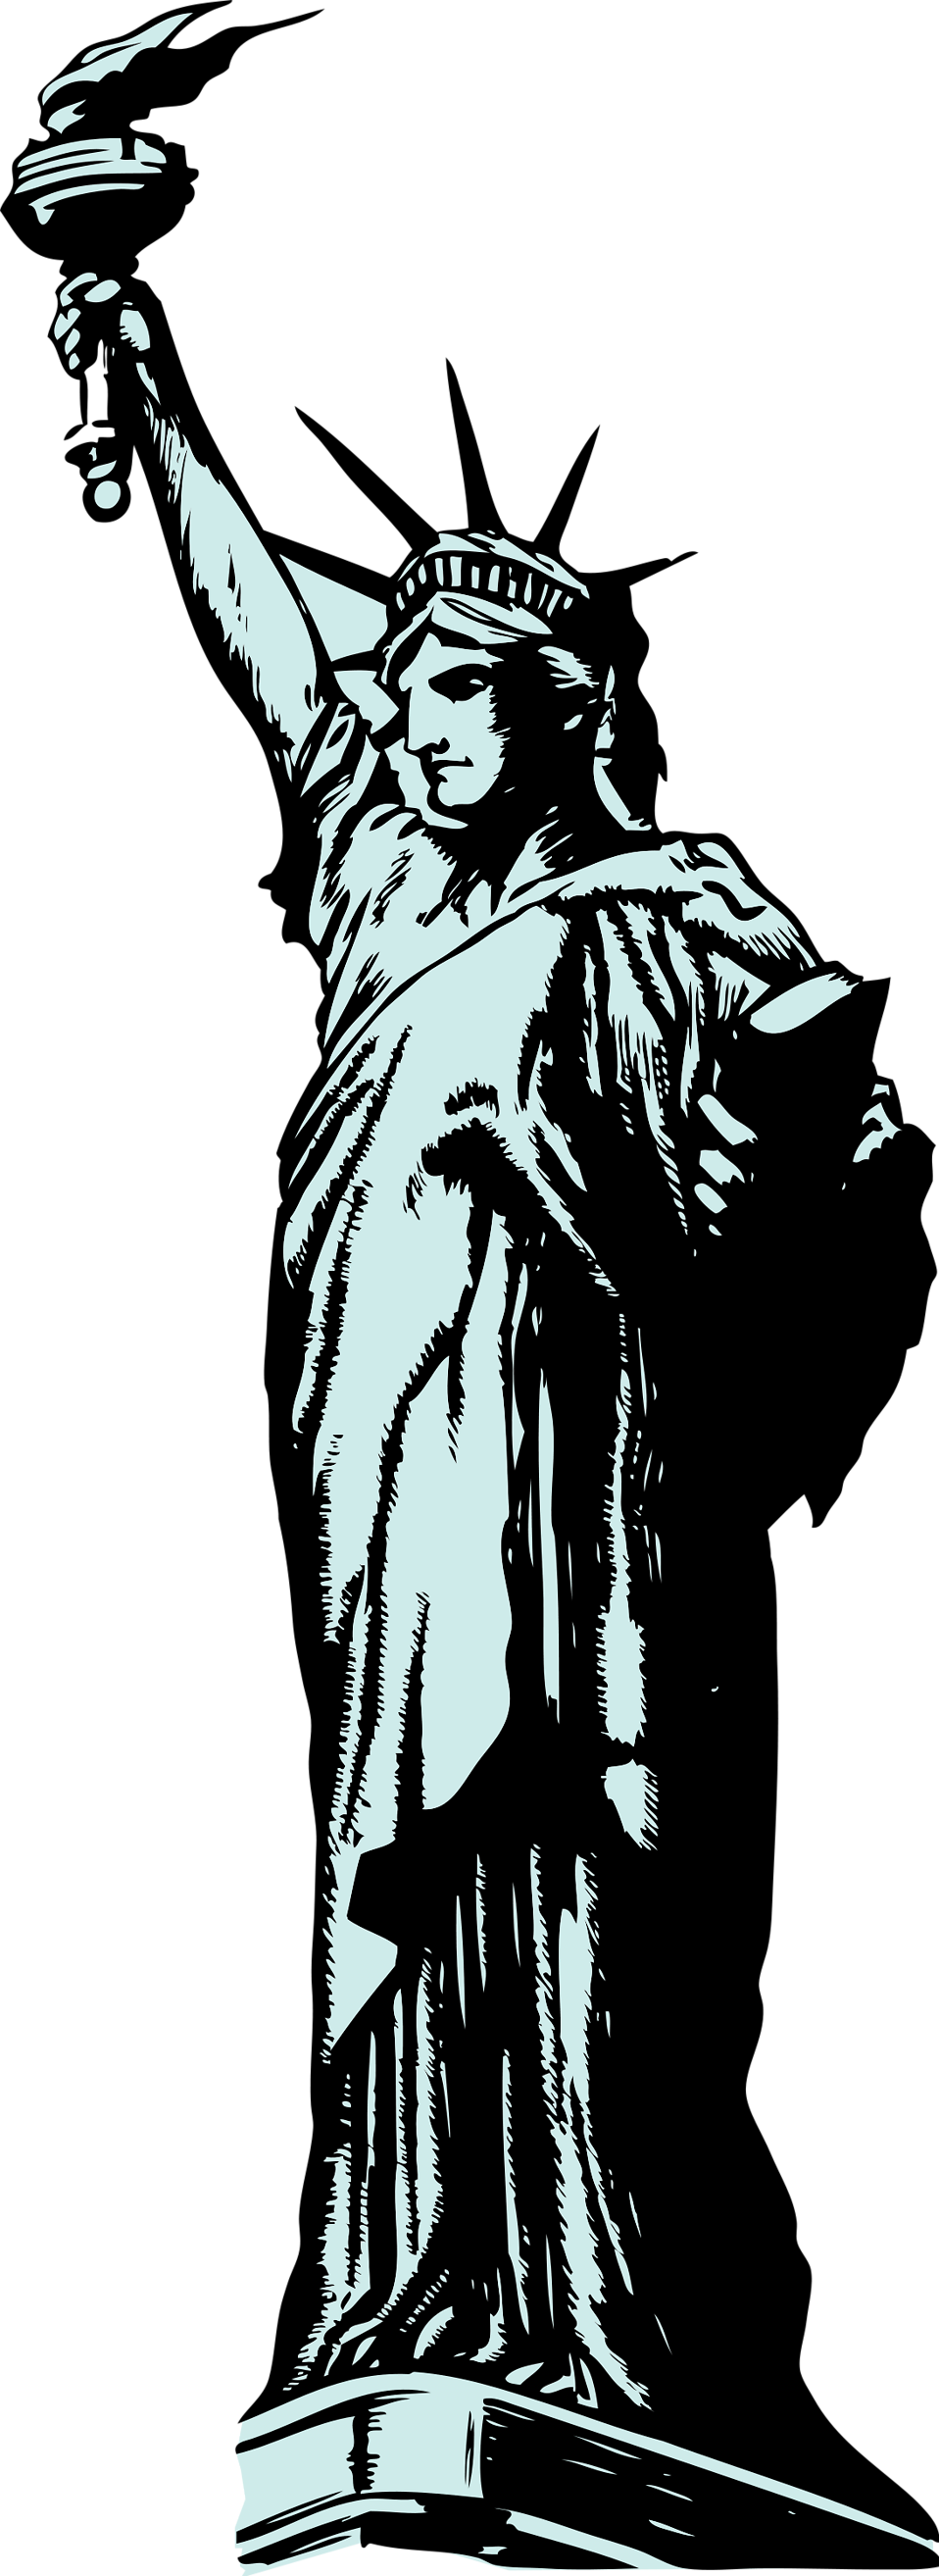 Statue of liberty illustration png. Clipart at getdrawings com